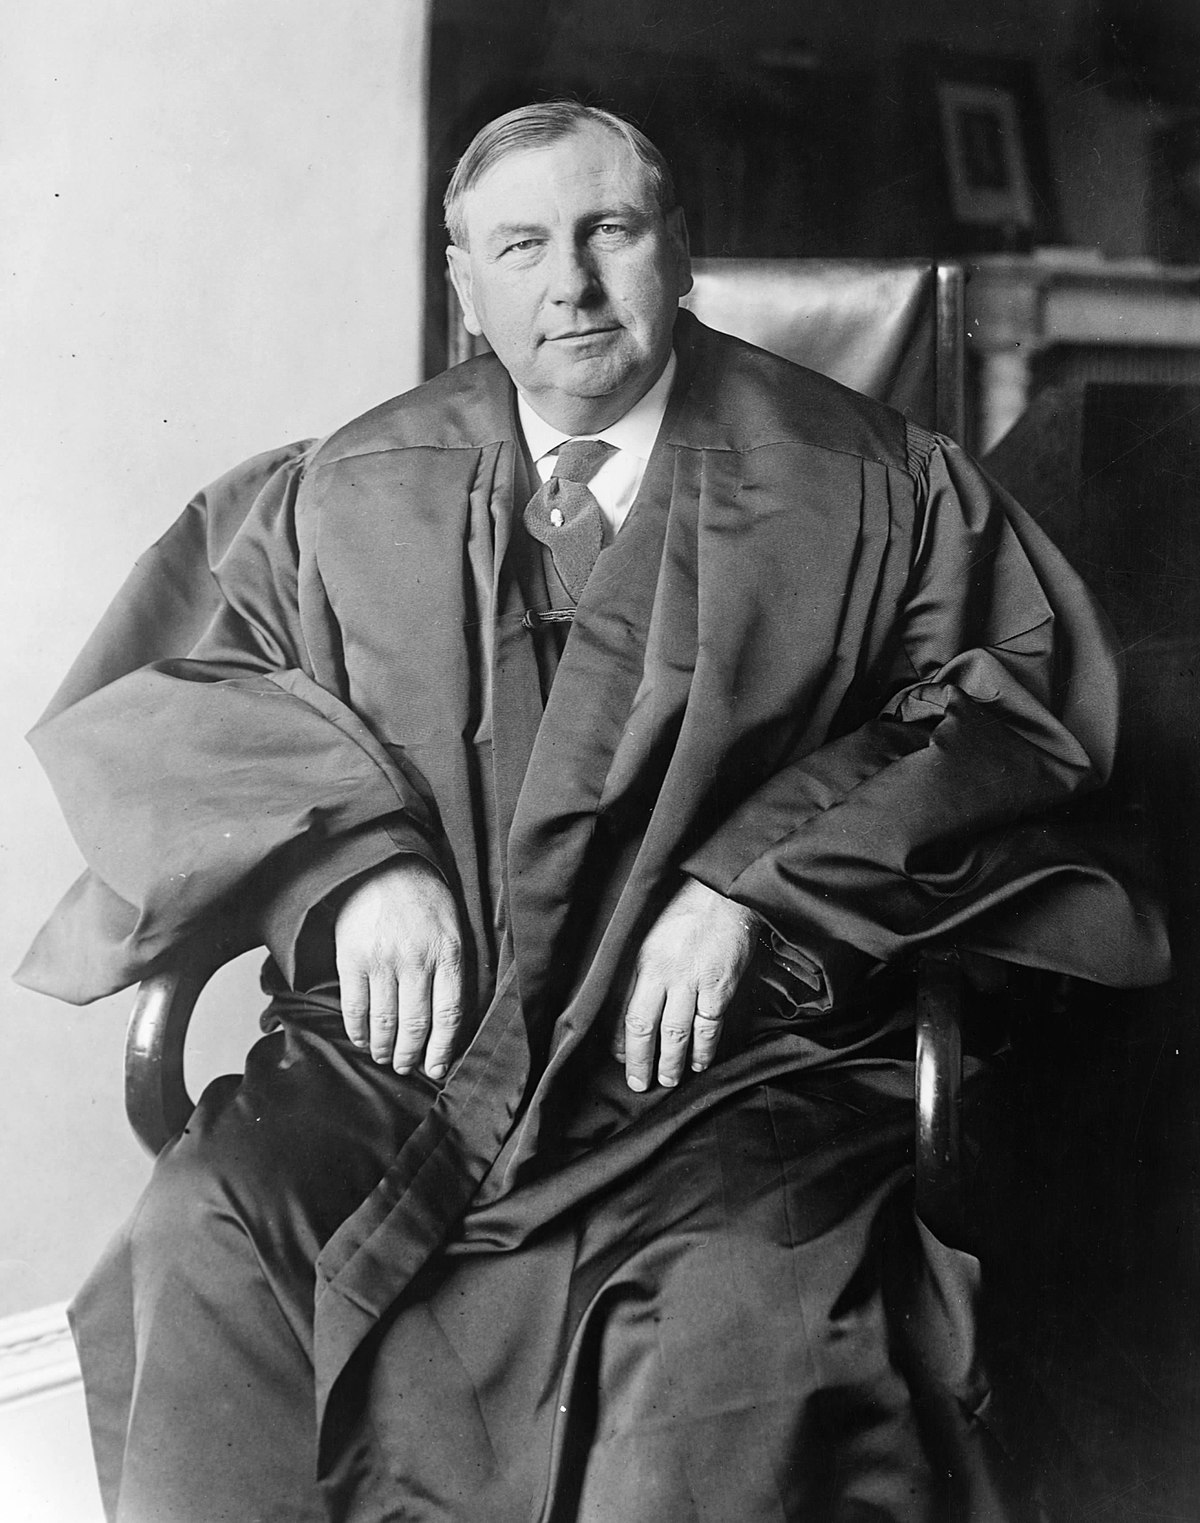 a biography of john marshall harlan ii an associate justice of the united states supreme court His marriage to ethel andrews resulted in a daughter named evangeline from 1877 until 1911, his grandfather, john marshall harlan, was also an associate justice in the supreme court associated with he was nominated to the supreme court by us president dwight d eisenhower as a replacement for robert h jackson.